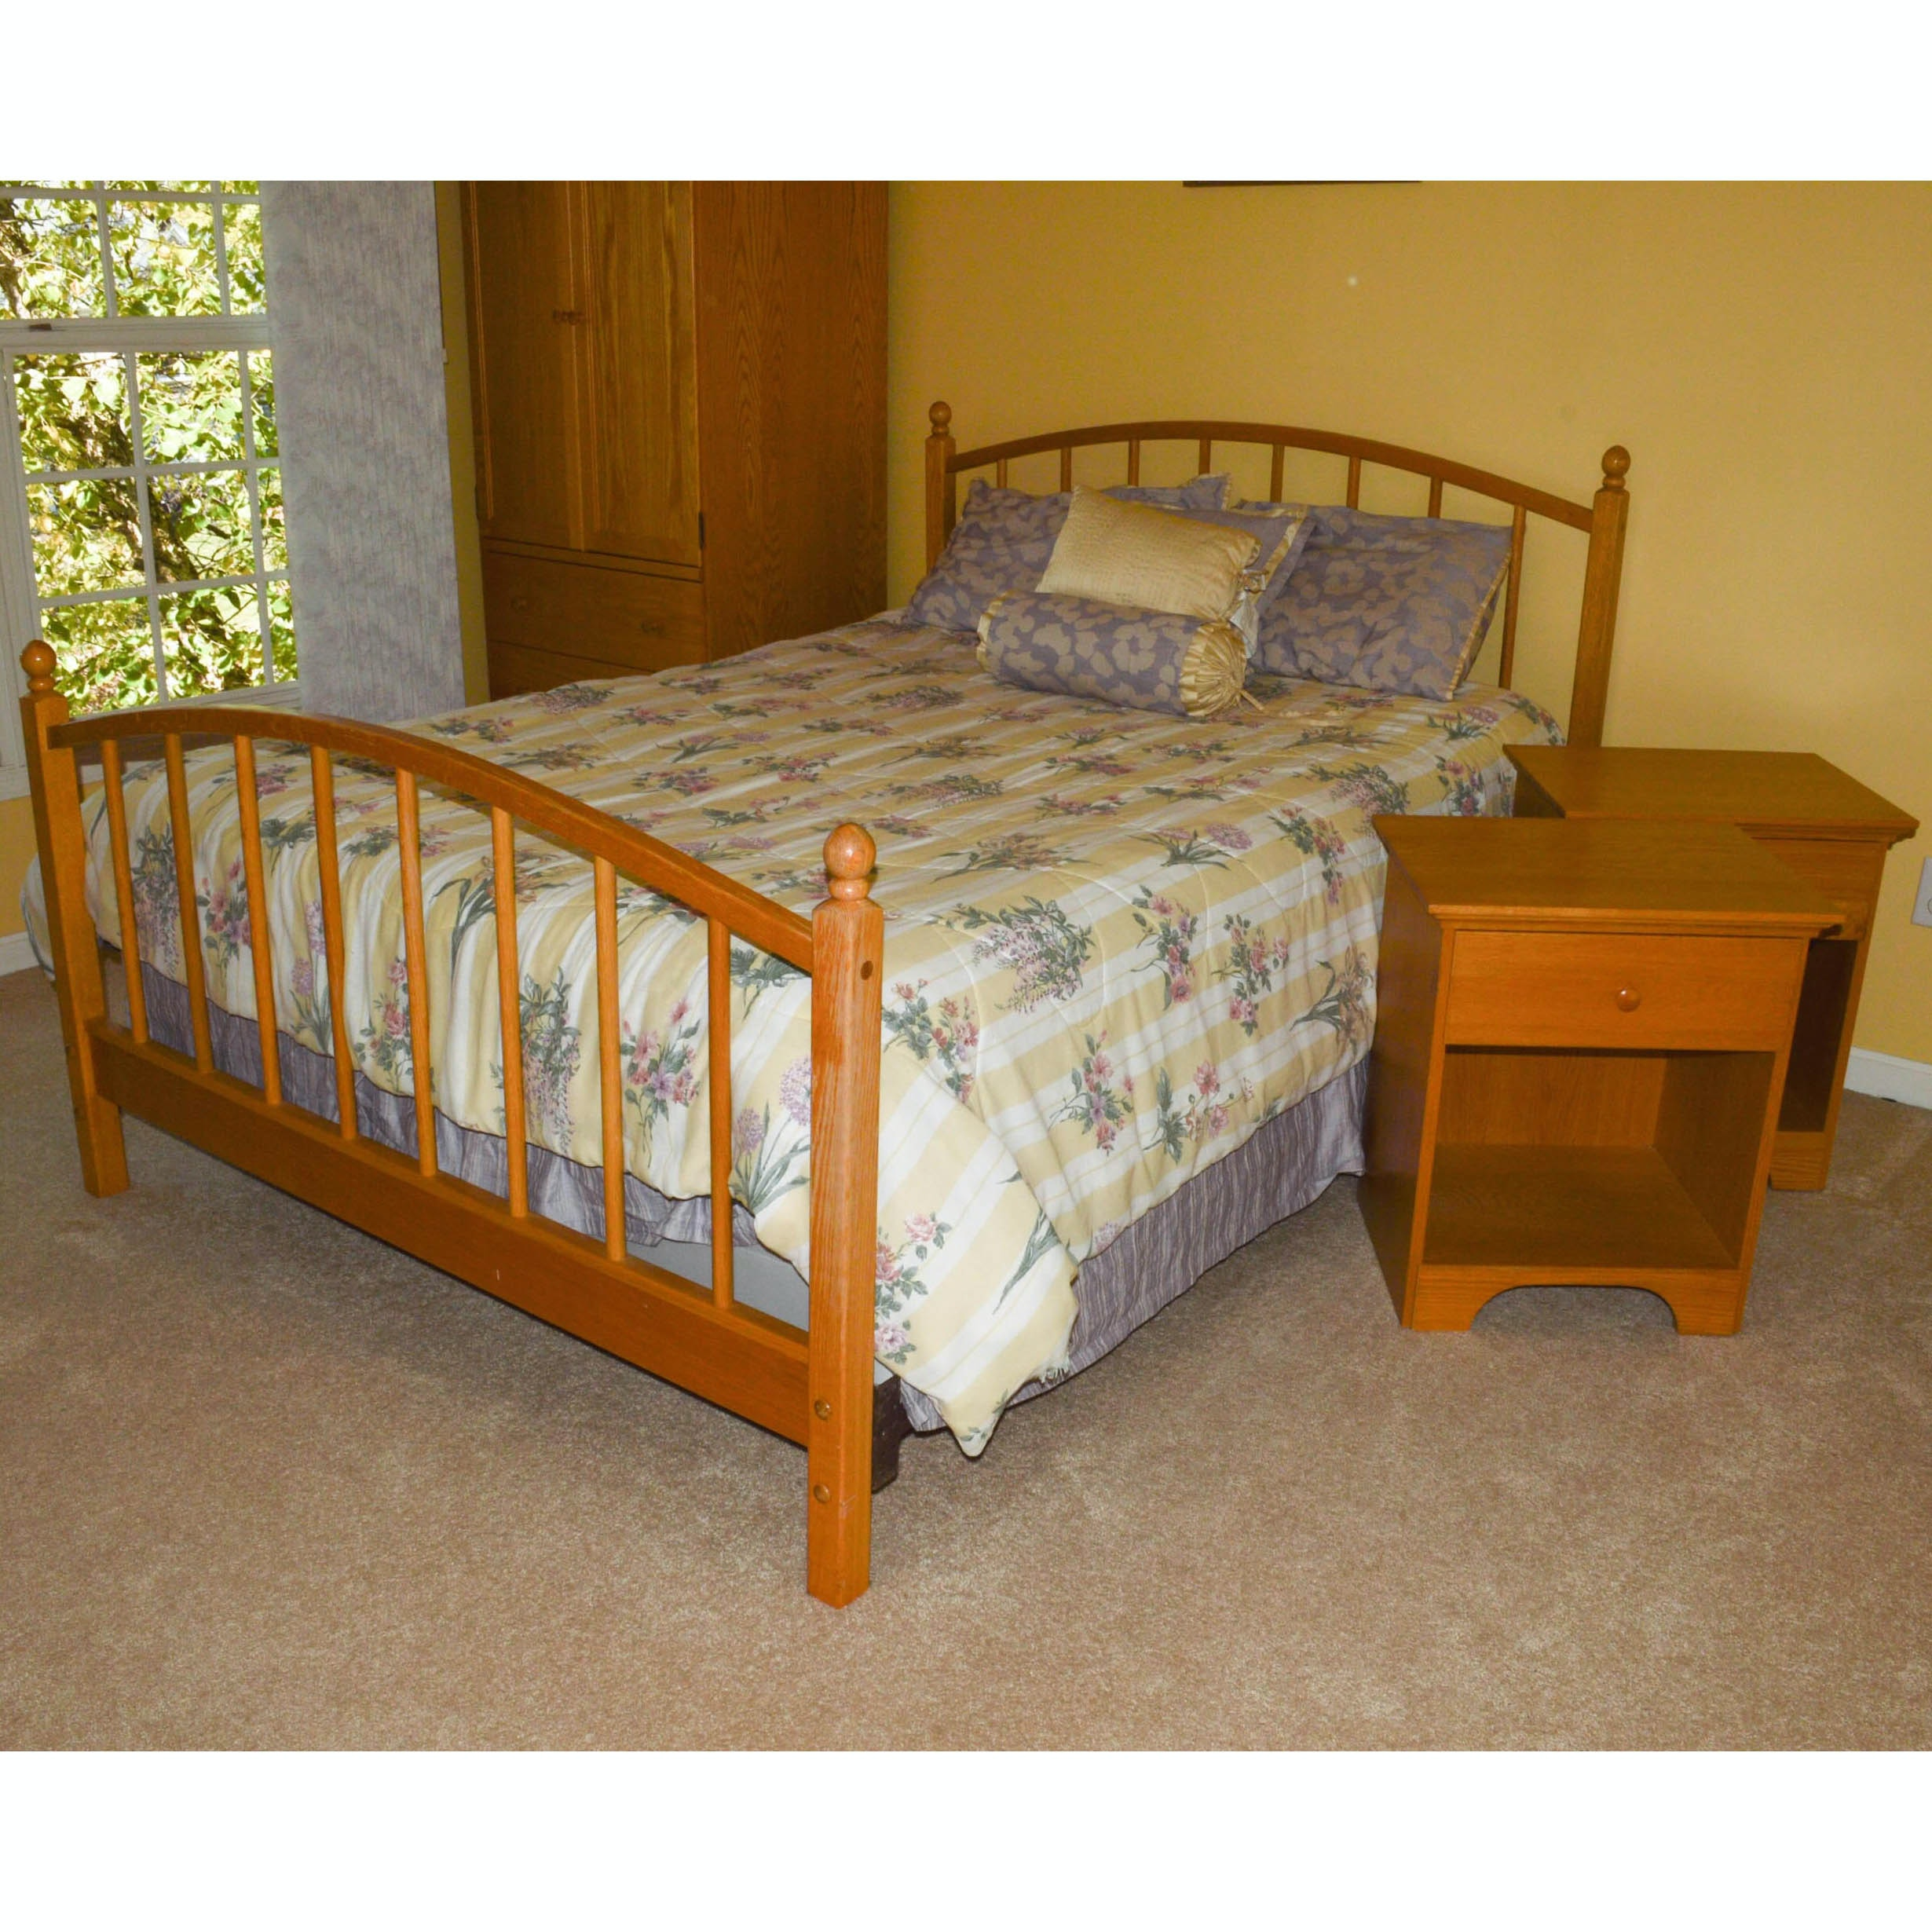 Arhaus Furniture Queen Size Bed Frame and Pair of Nightstands